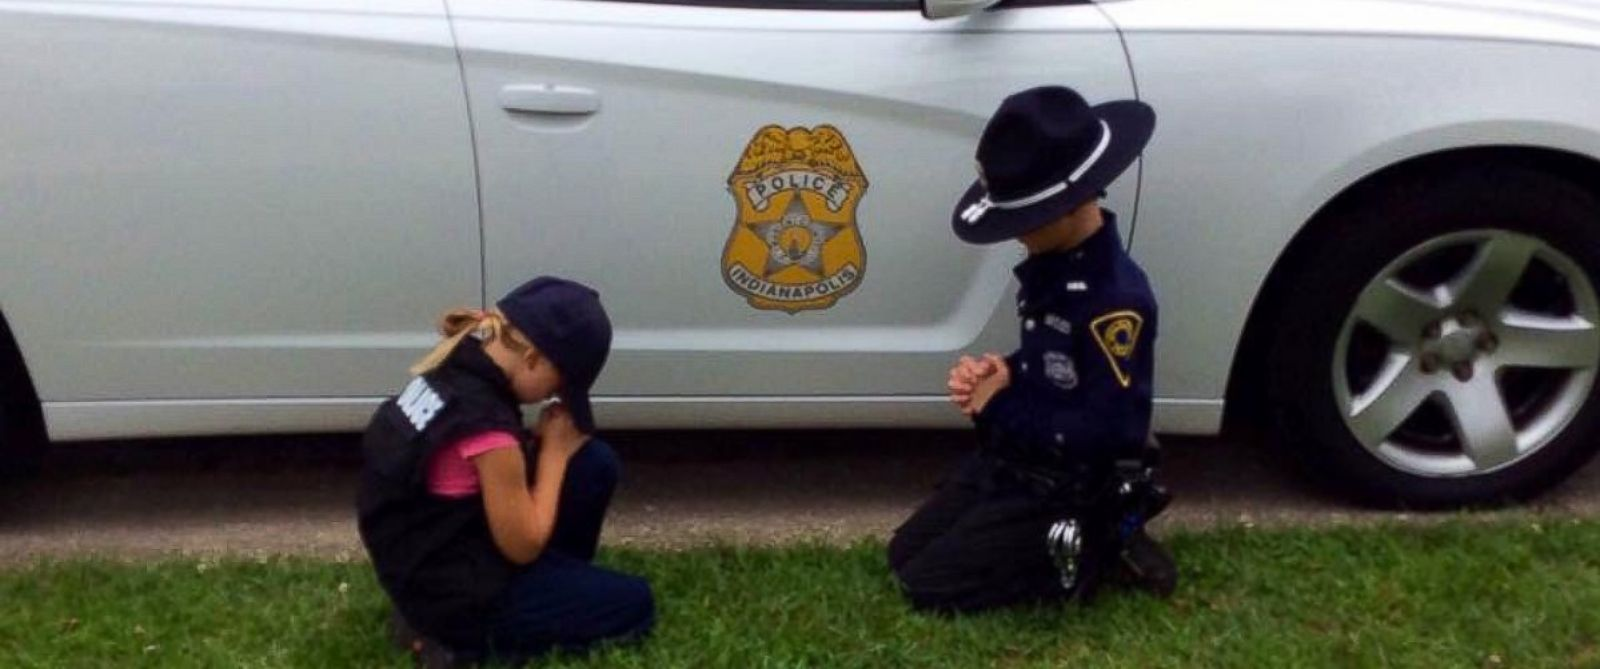 Photo Captures Police Officer's Children Praying for His Safety